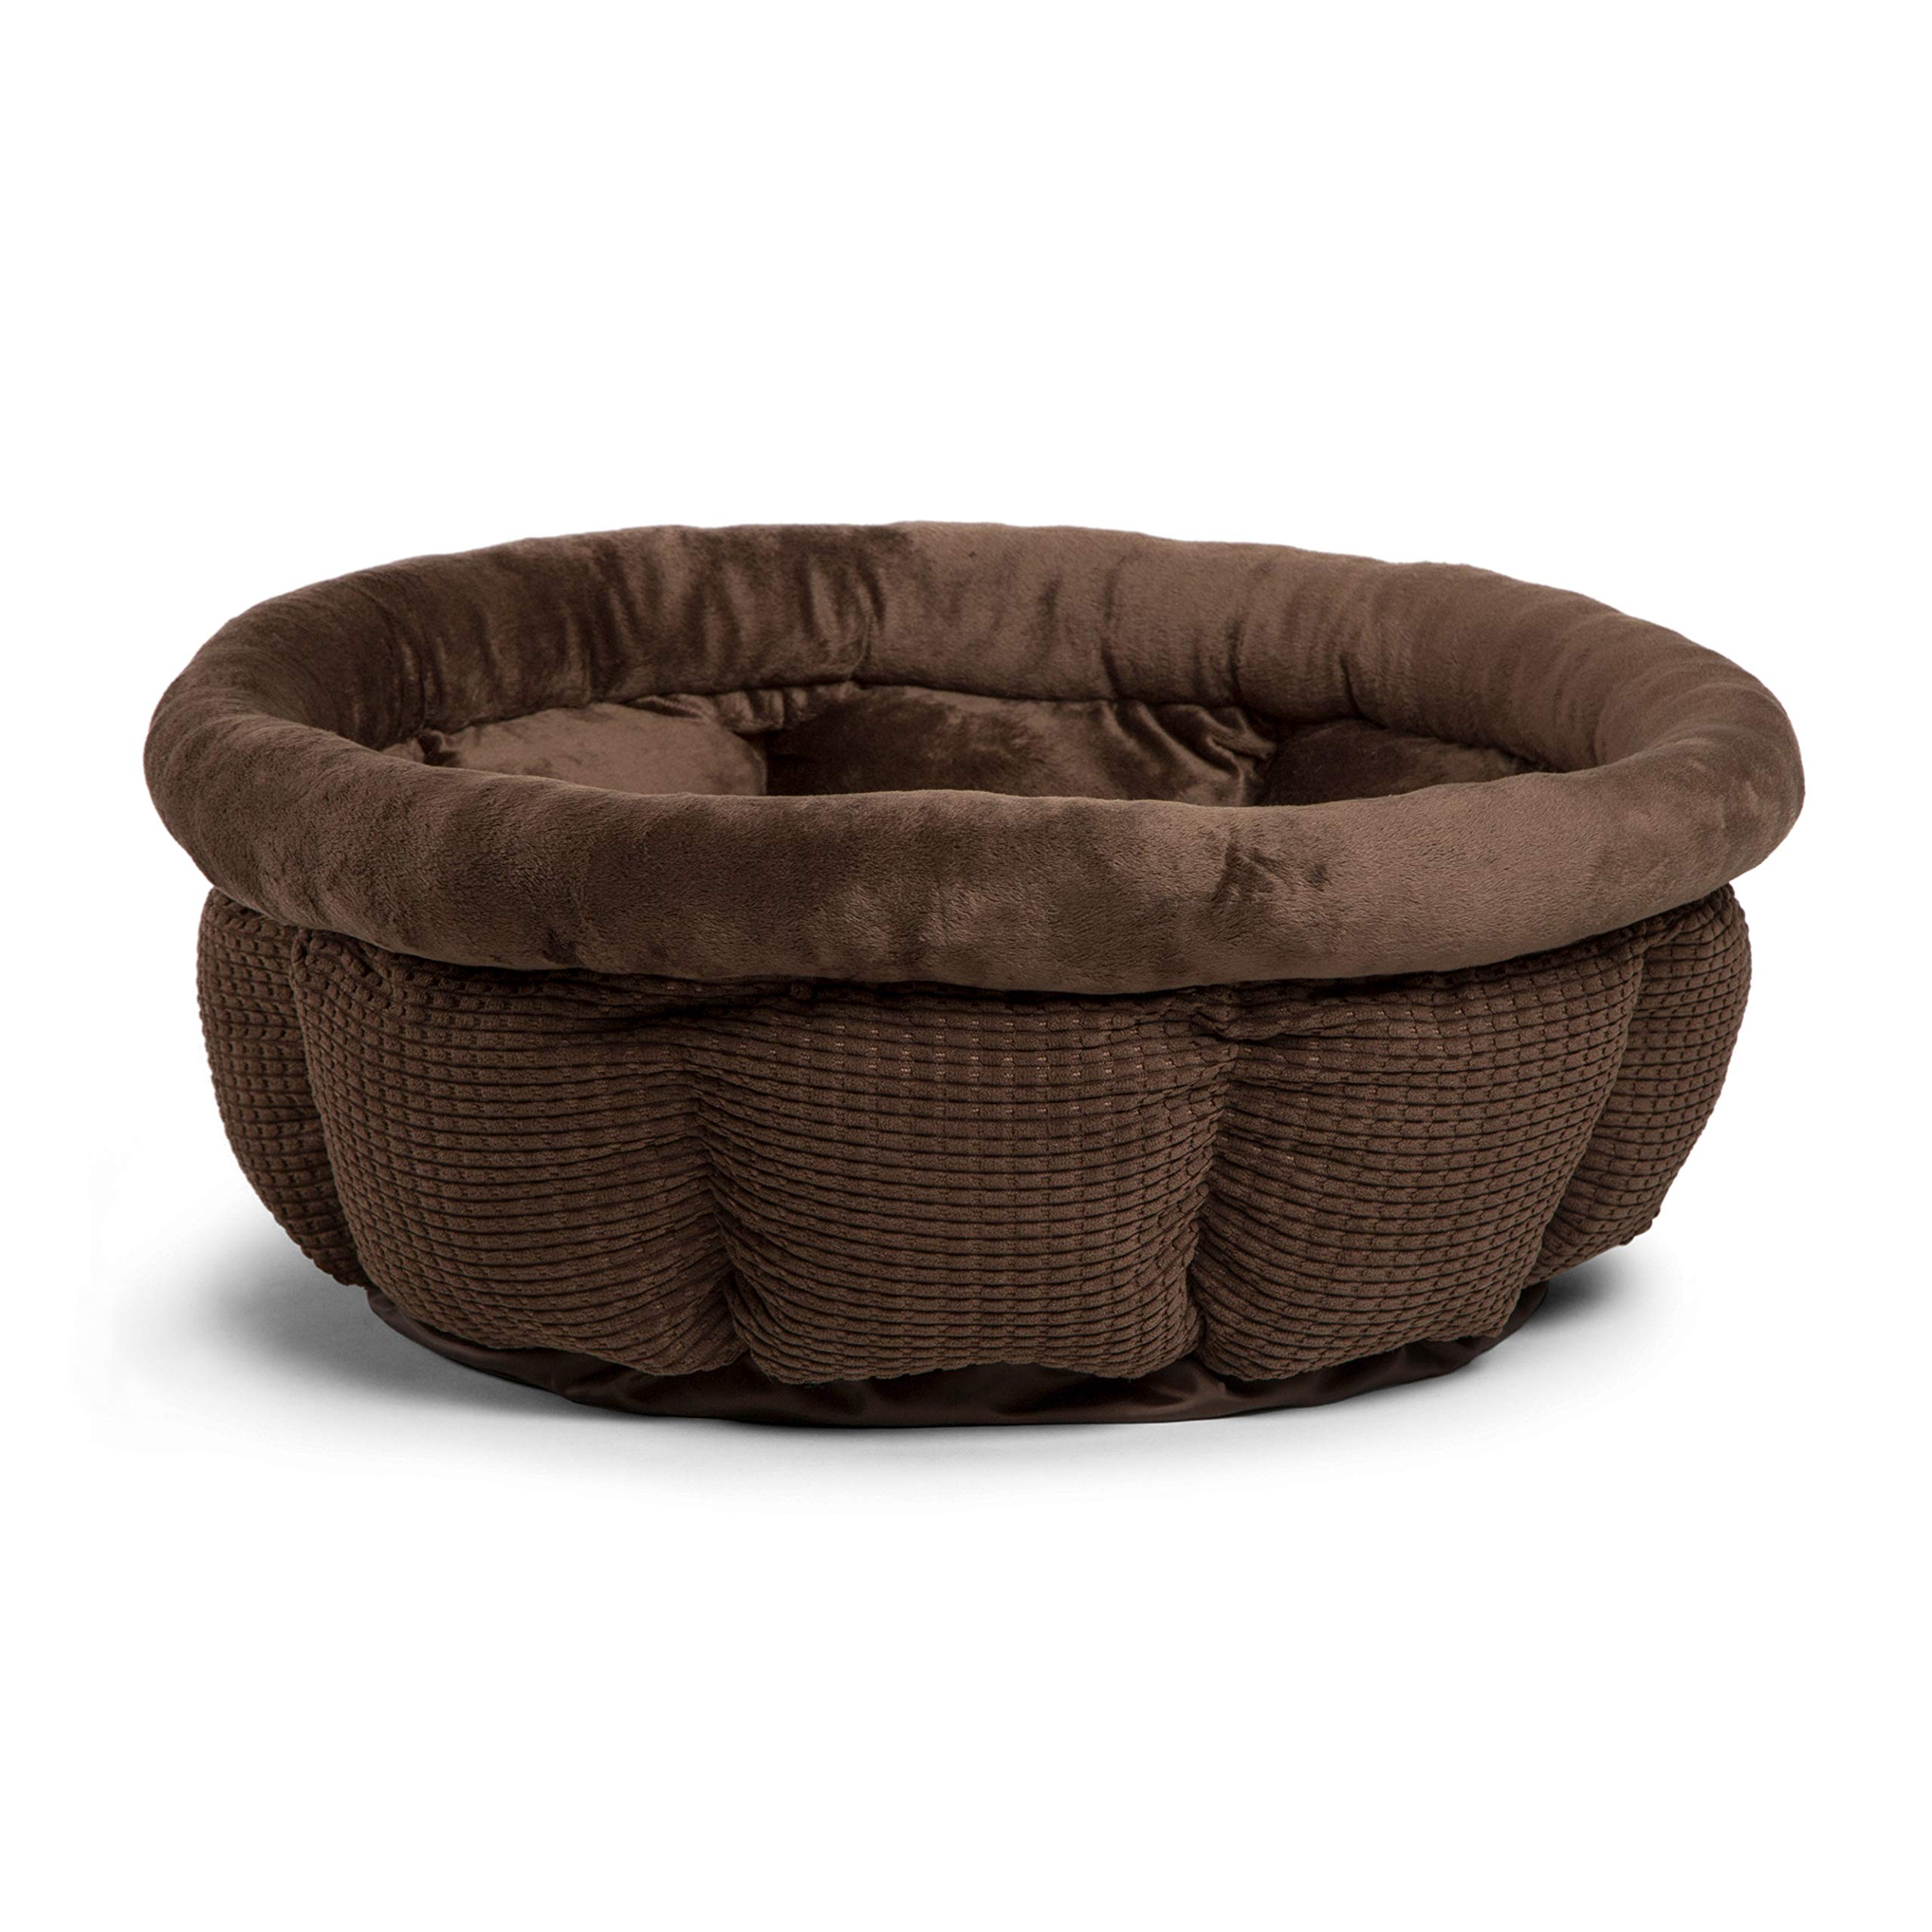 Best Friends by Sheri Jumbo Cup in Mason Dog Bed/Cat Bed, Dark Chocolate, Jumbo